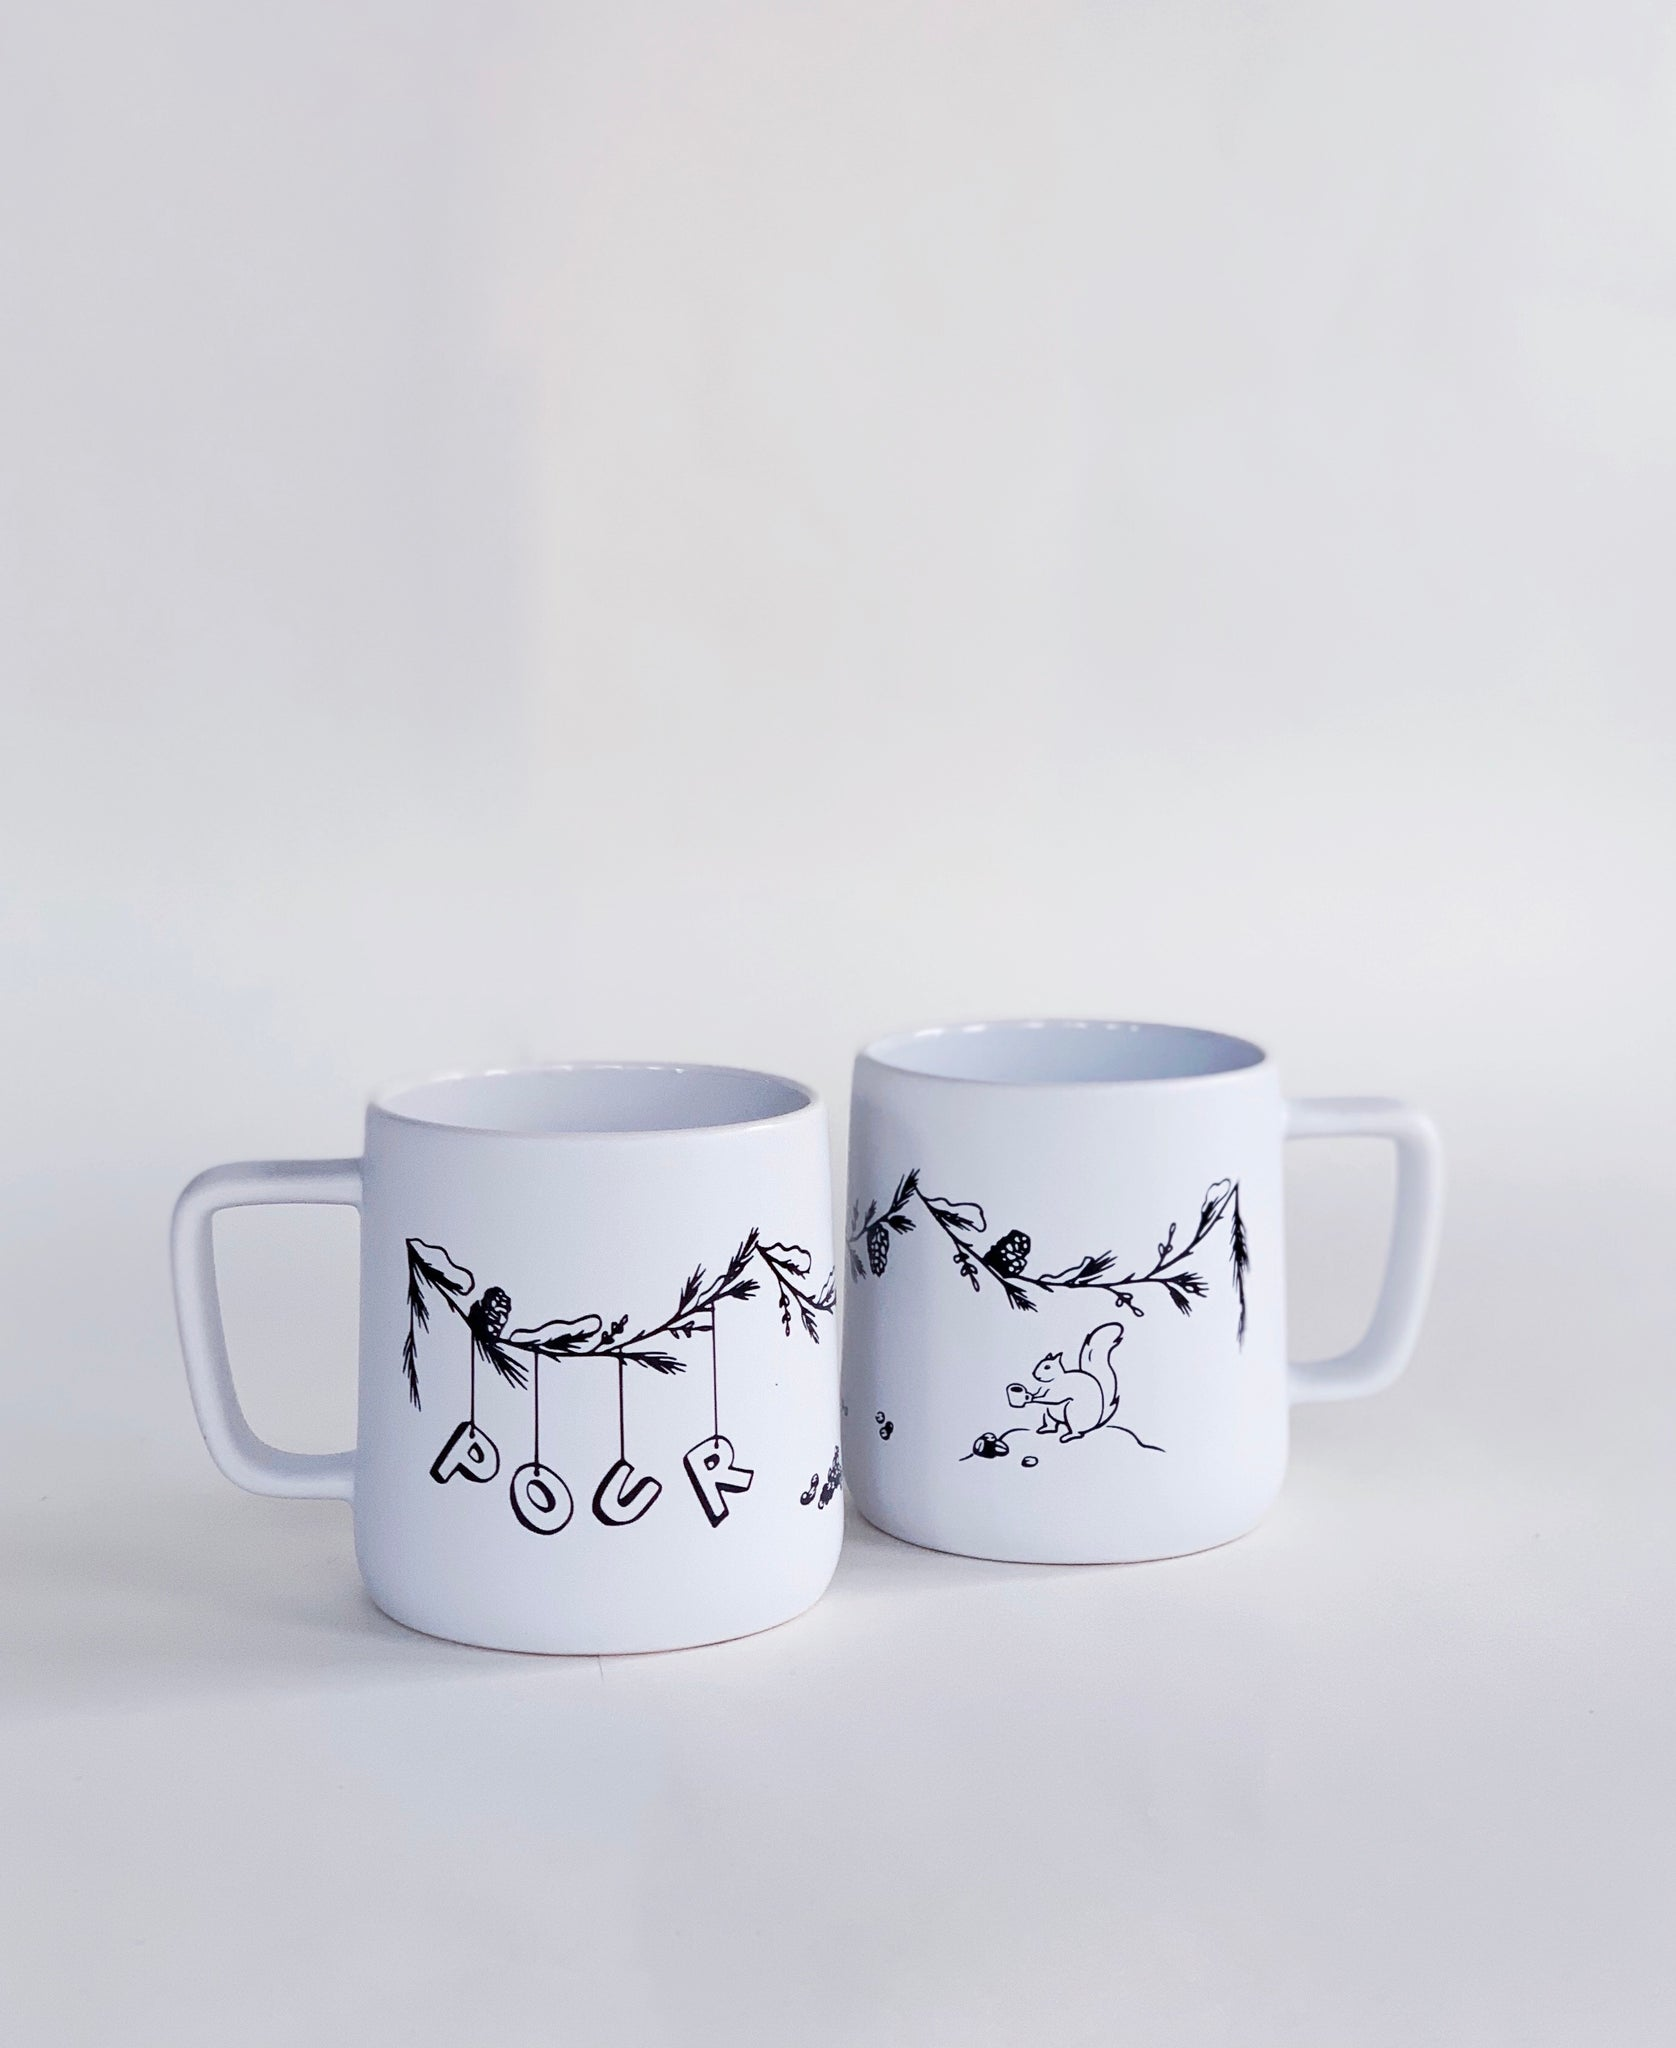 Pour Limited Edition Winter Mug